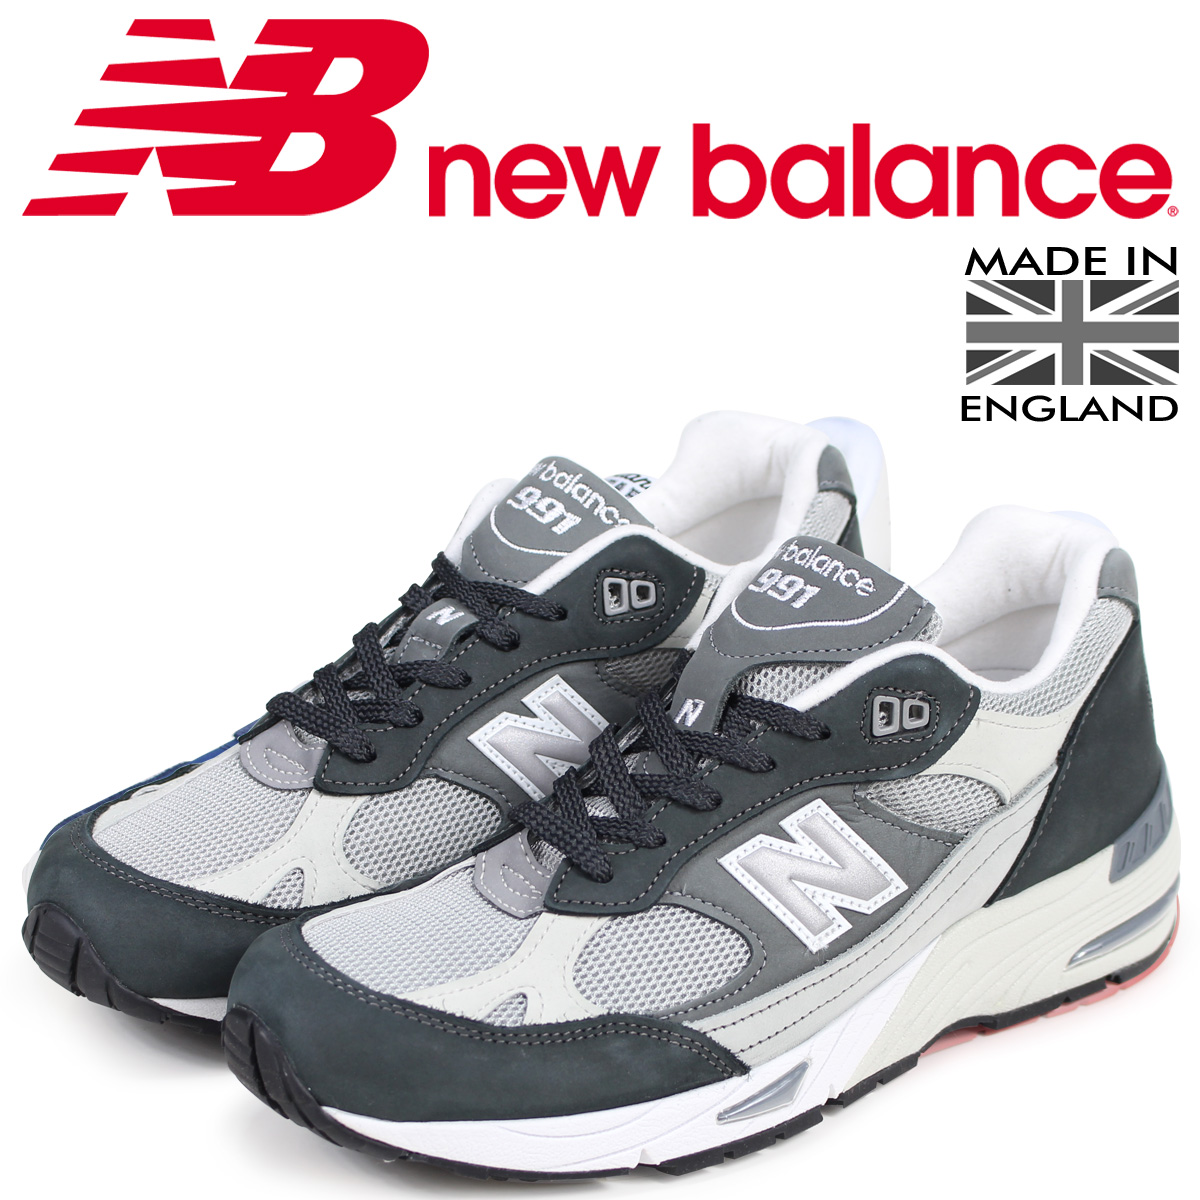 New Balance Shoes UK 60items | Rakuten Global Market